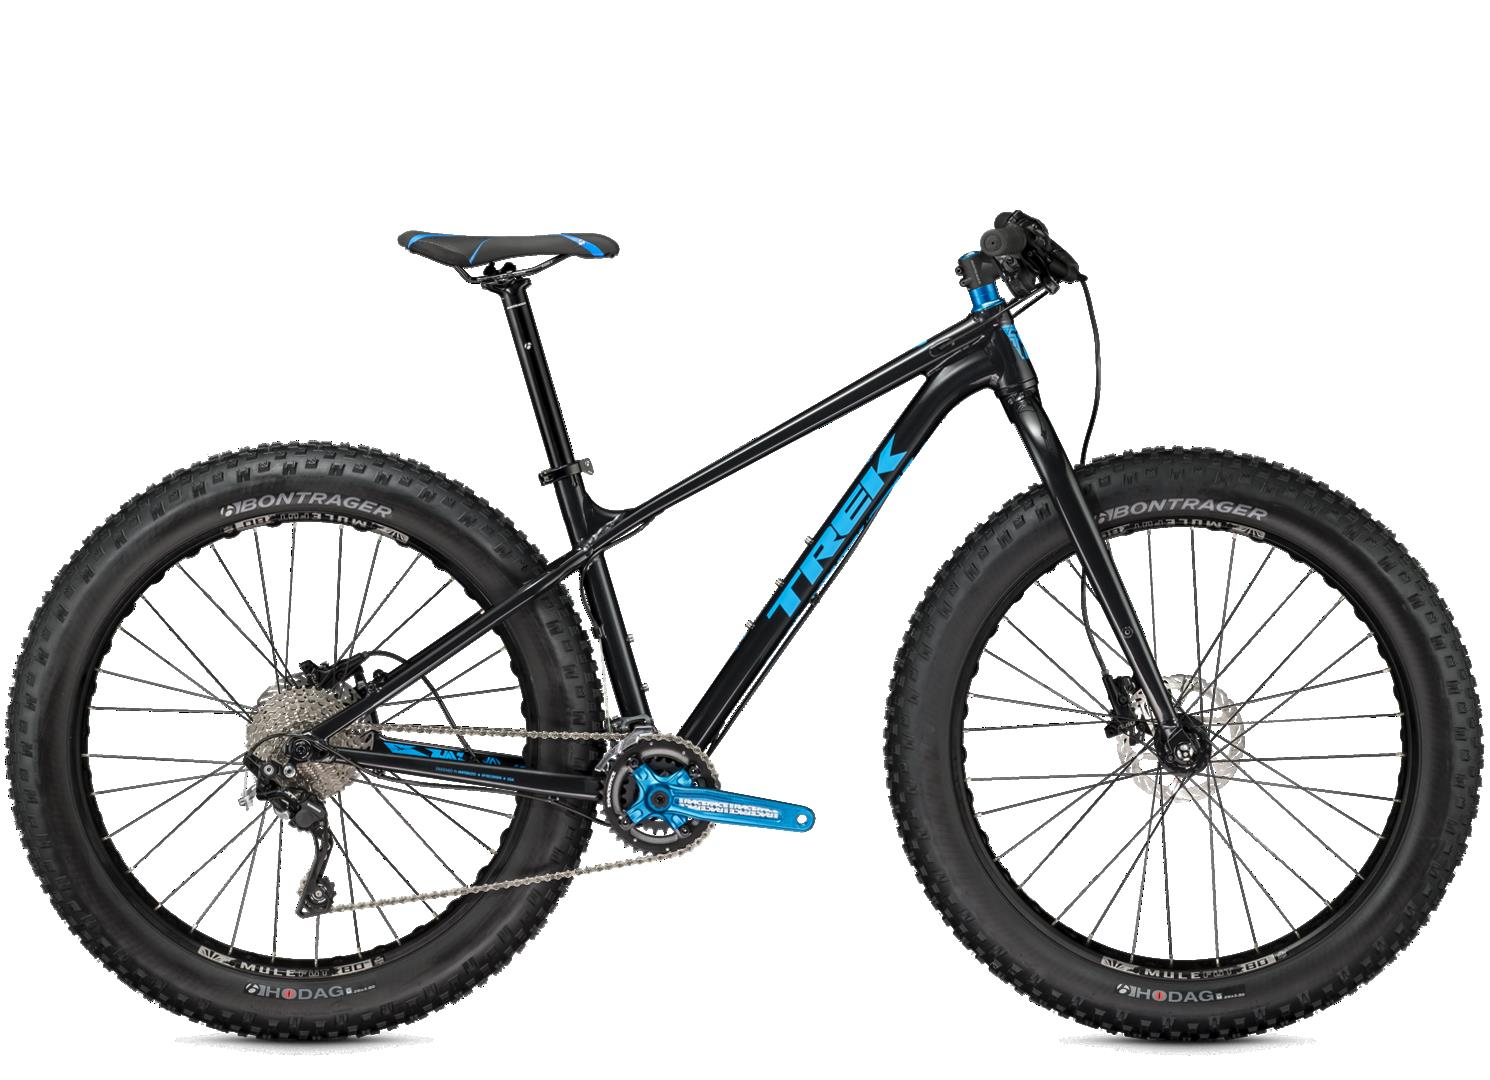 Trek issues nationwide recall of select 2014 and 2015